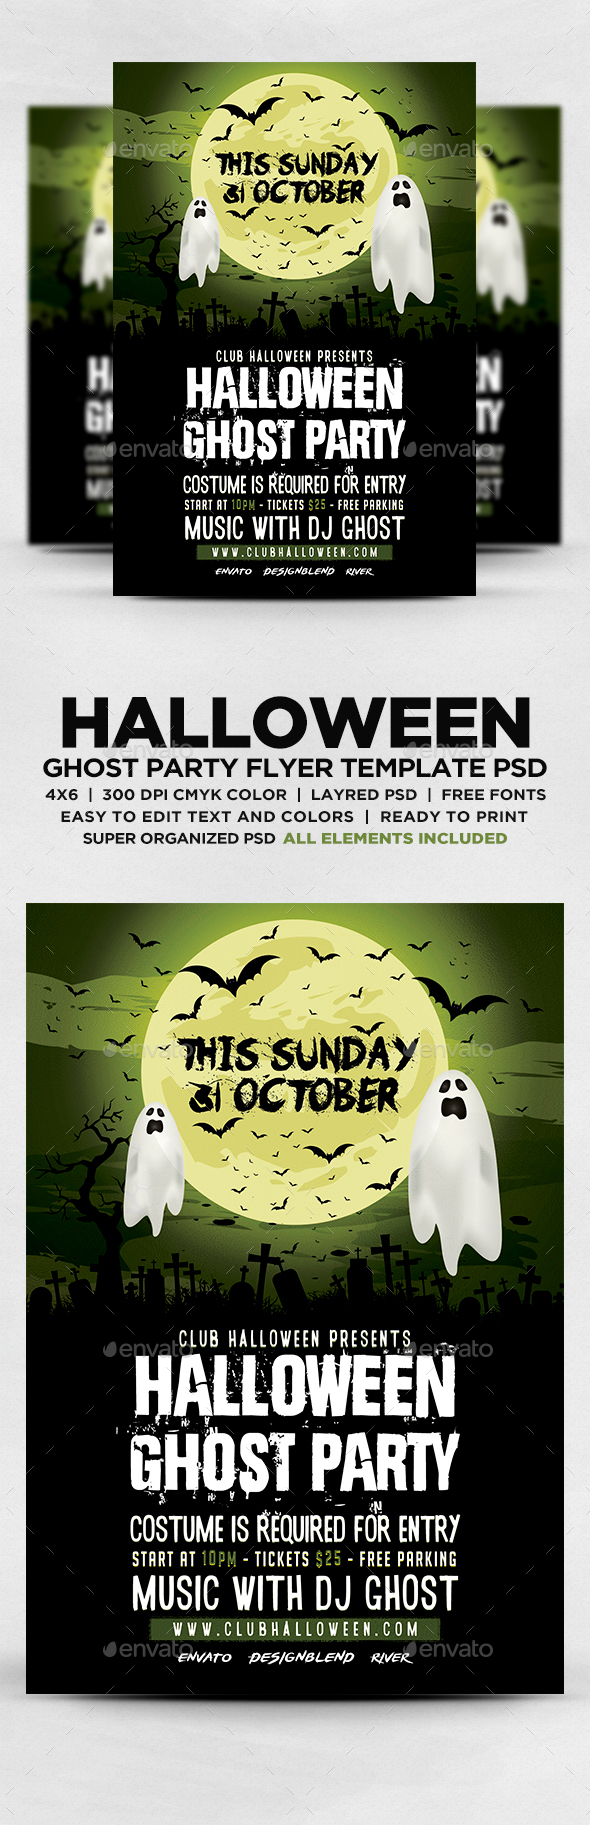 Halloween Ghost Party Flyer - Flyers Print Templates